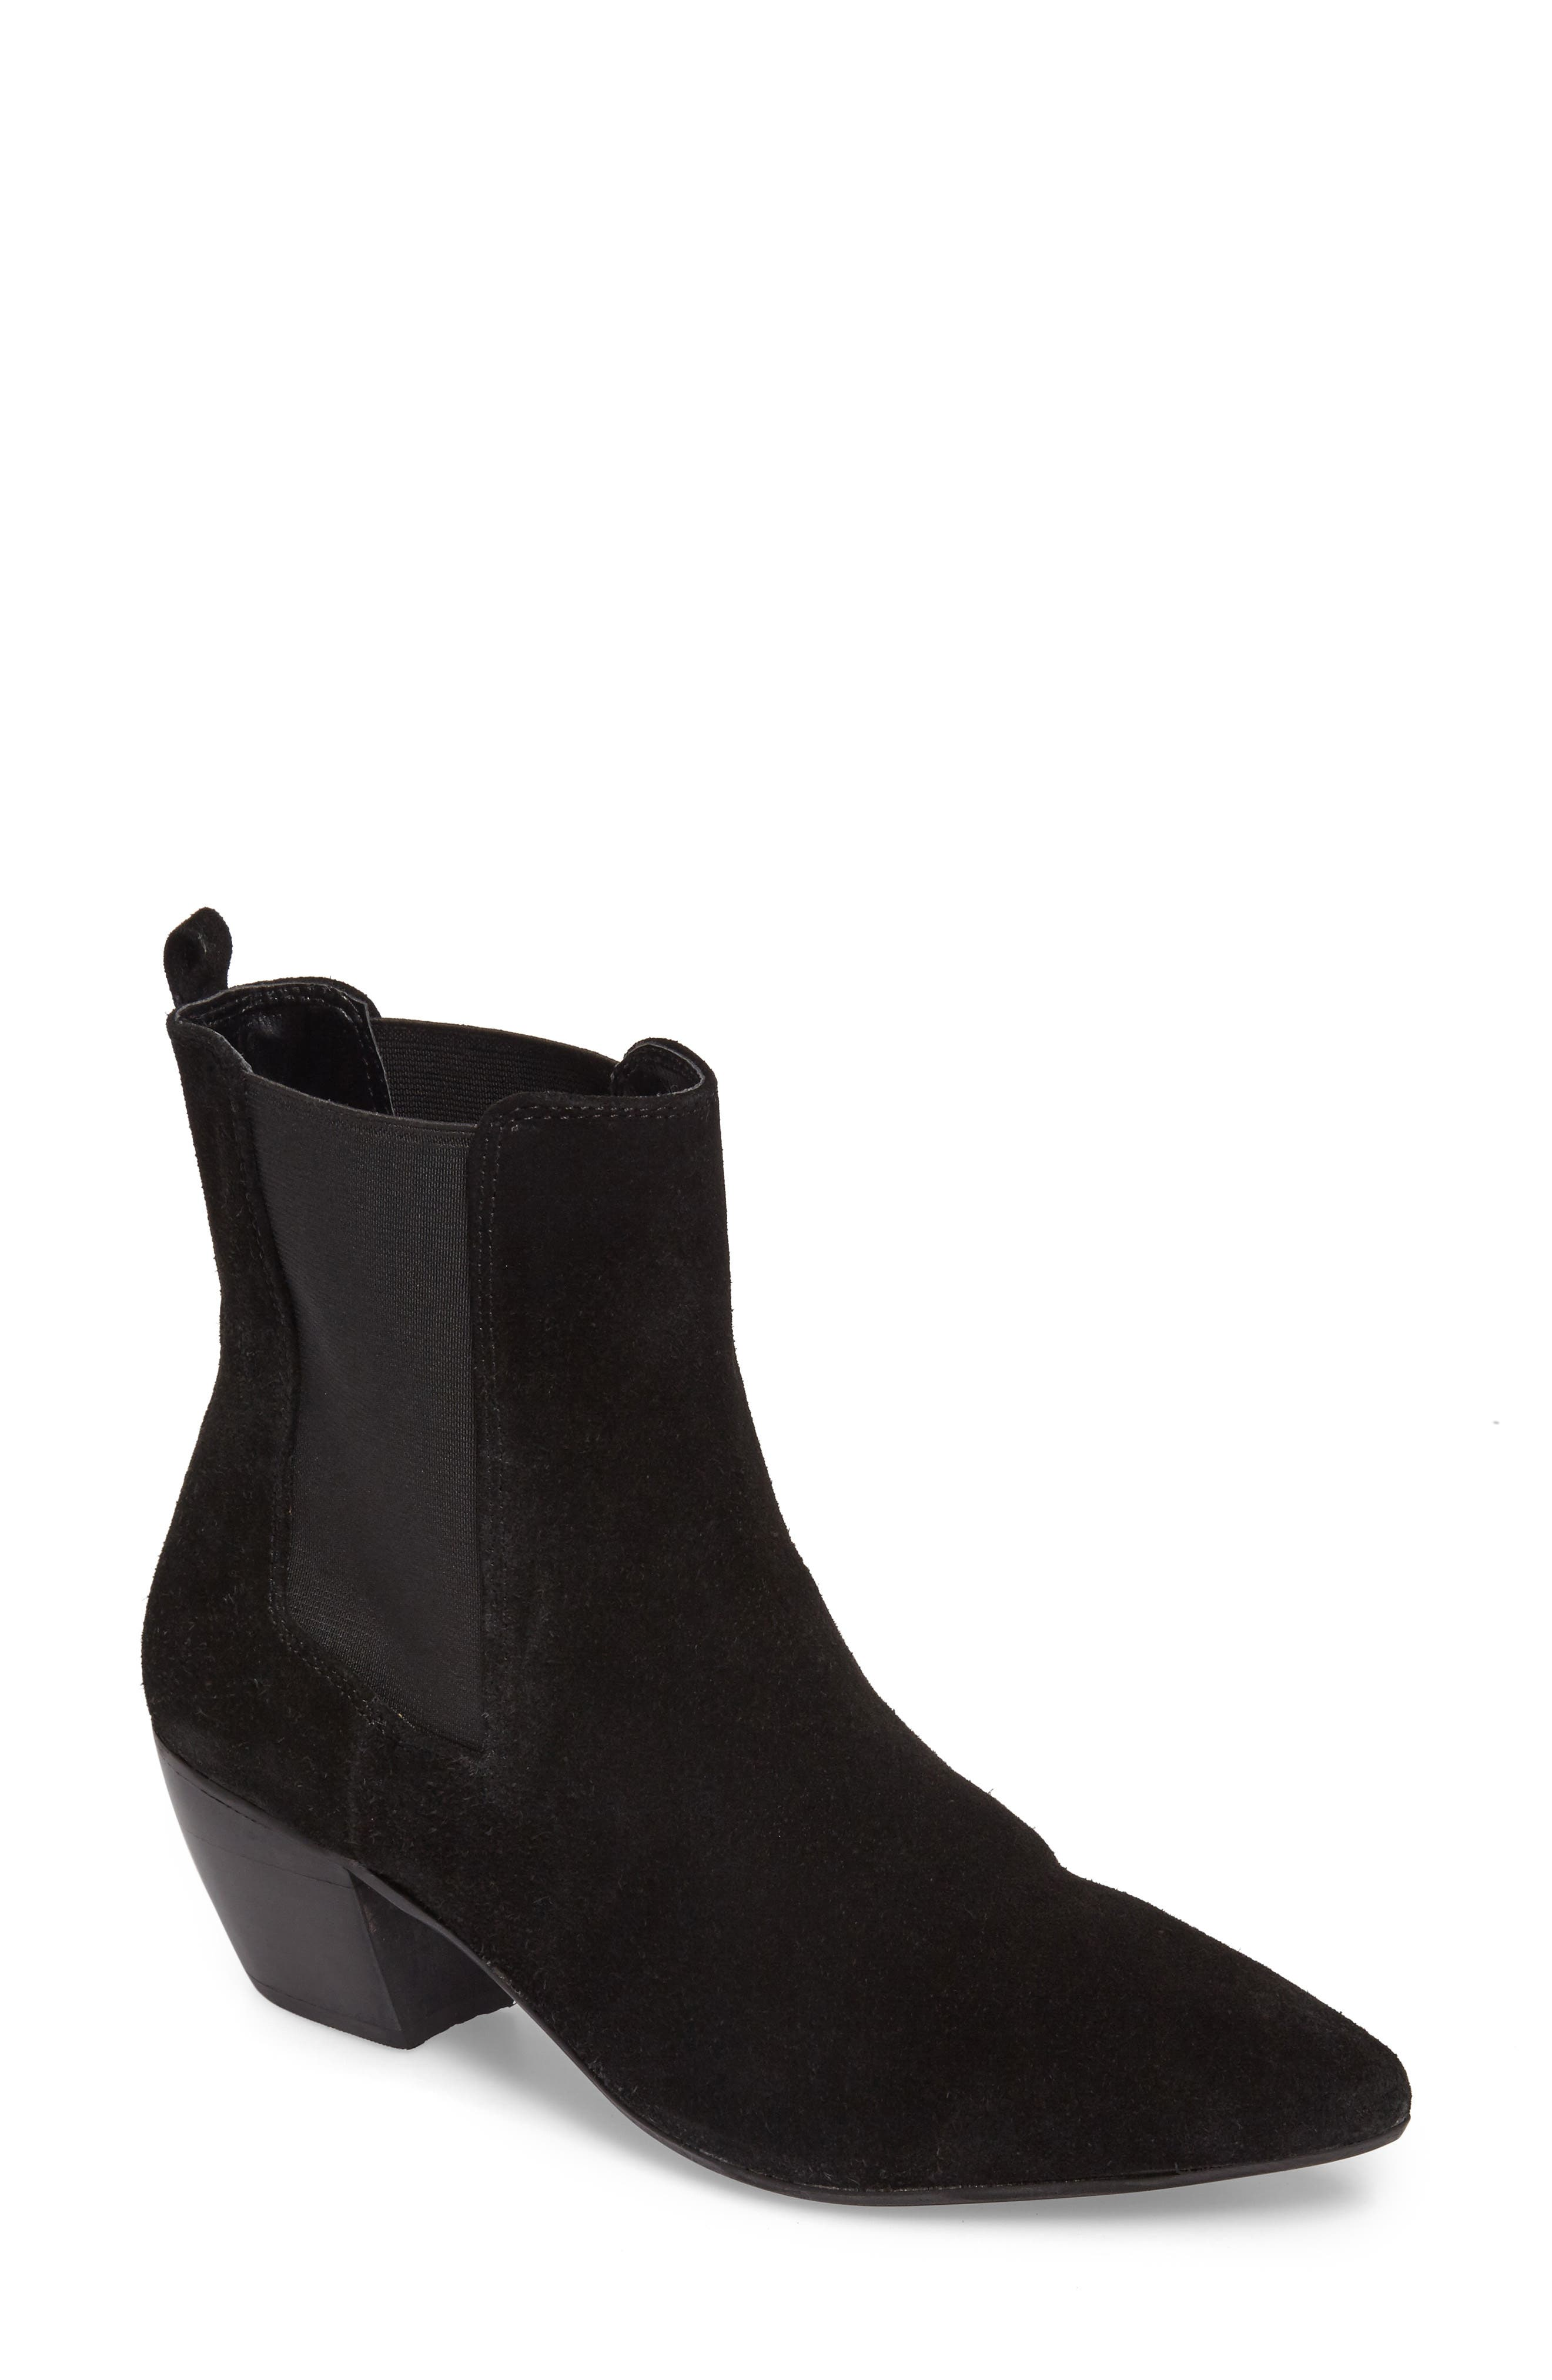 Bounty Suede Pointy Toe Bootie,                             Main thumbnail 1, color,